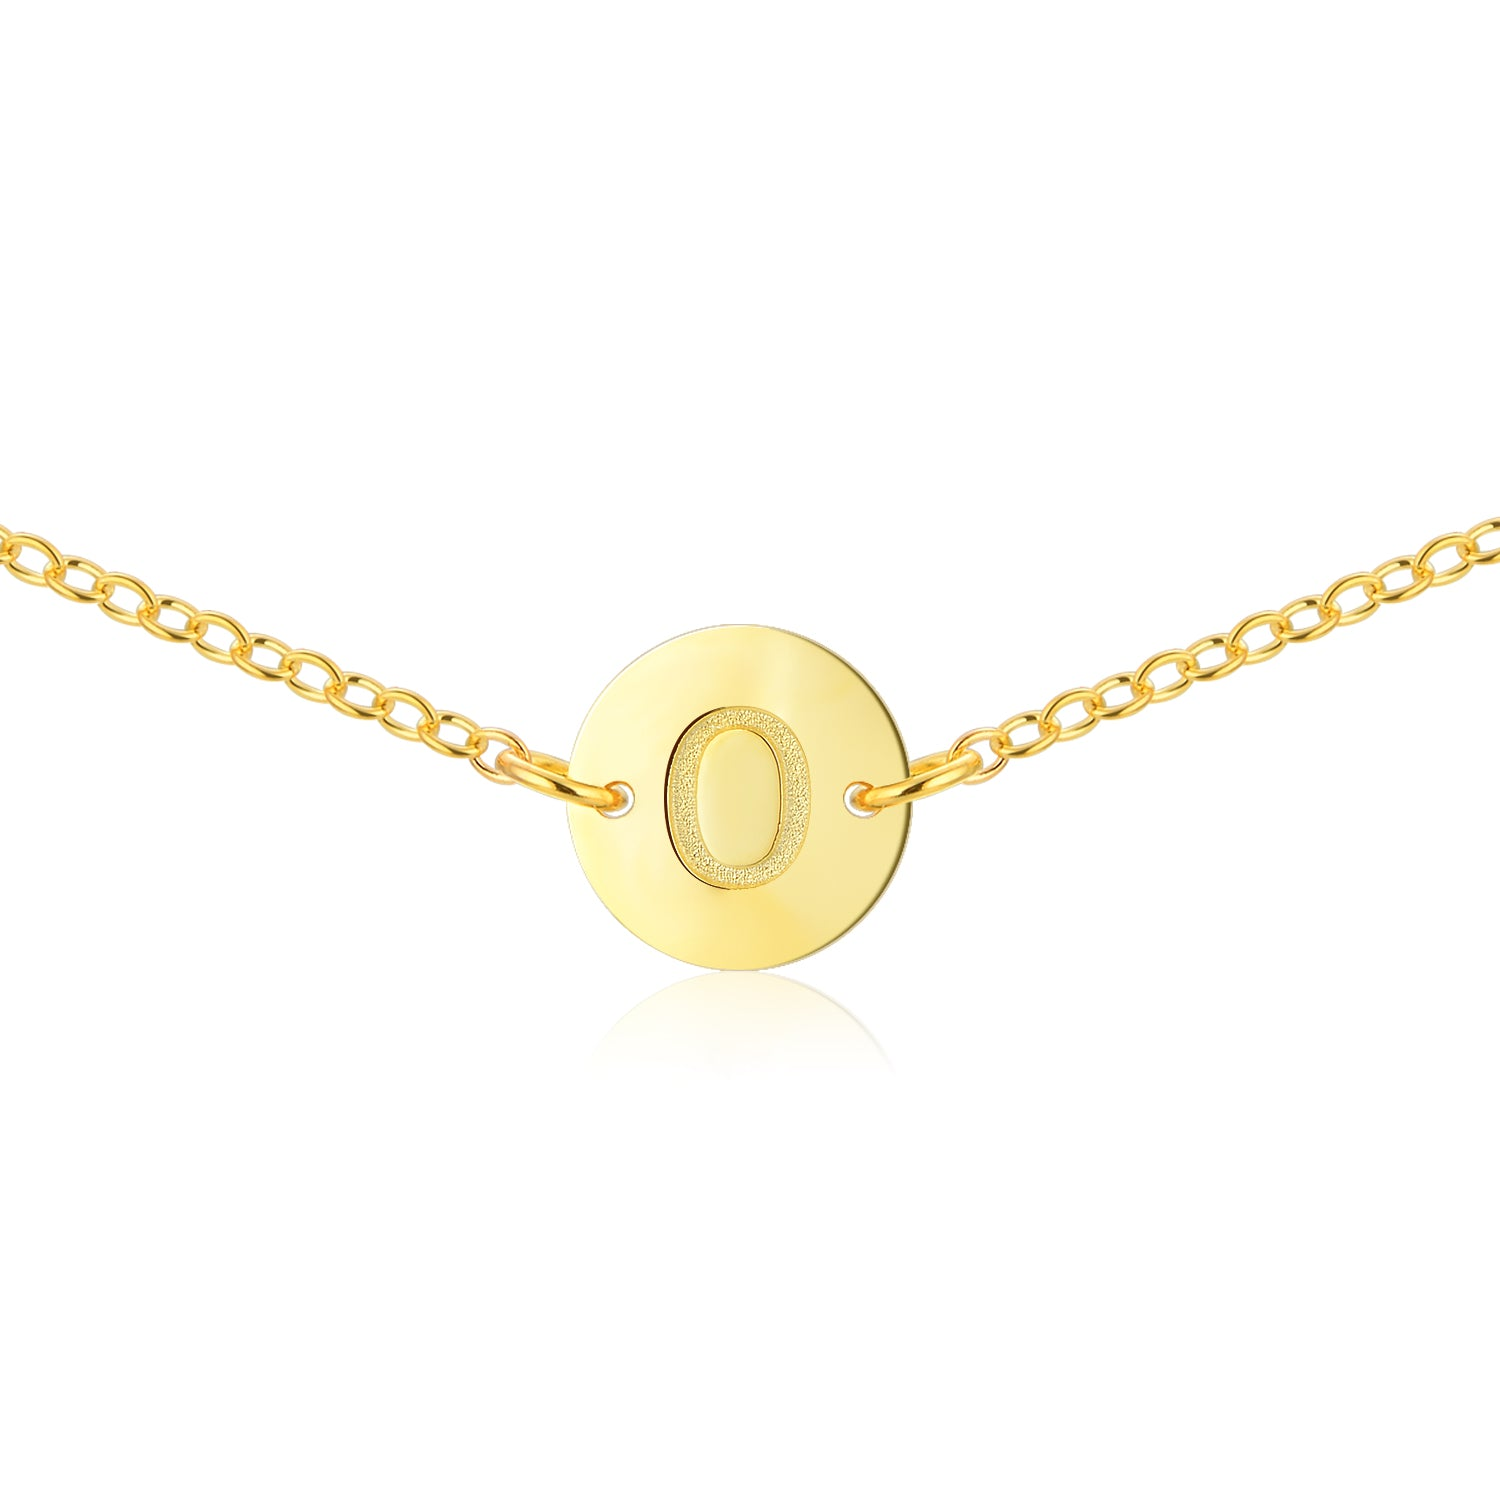 Circular Initial Necklace [ Letter O ] - .925 Sterling Silver [18K Gold Plated] [14 Inch]